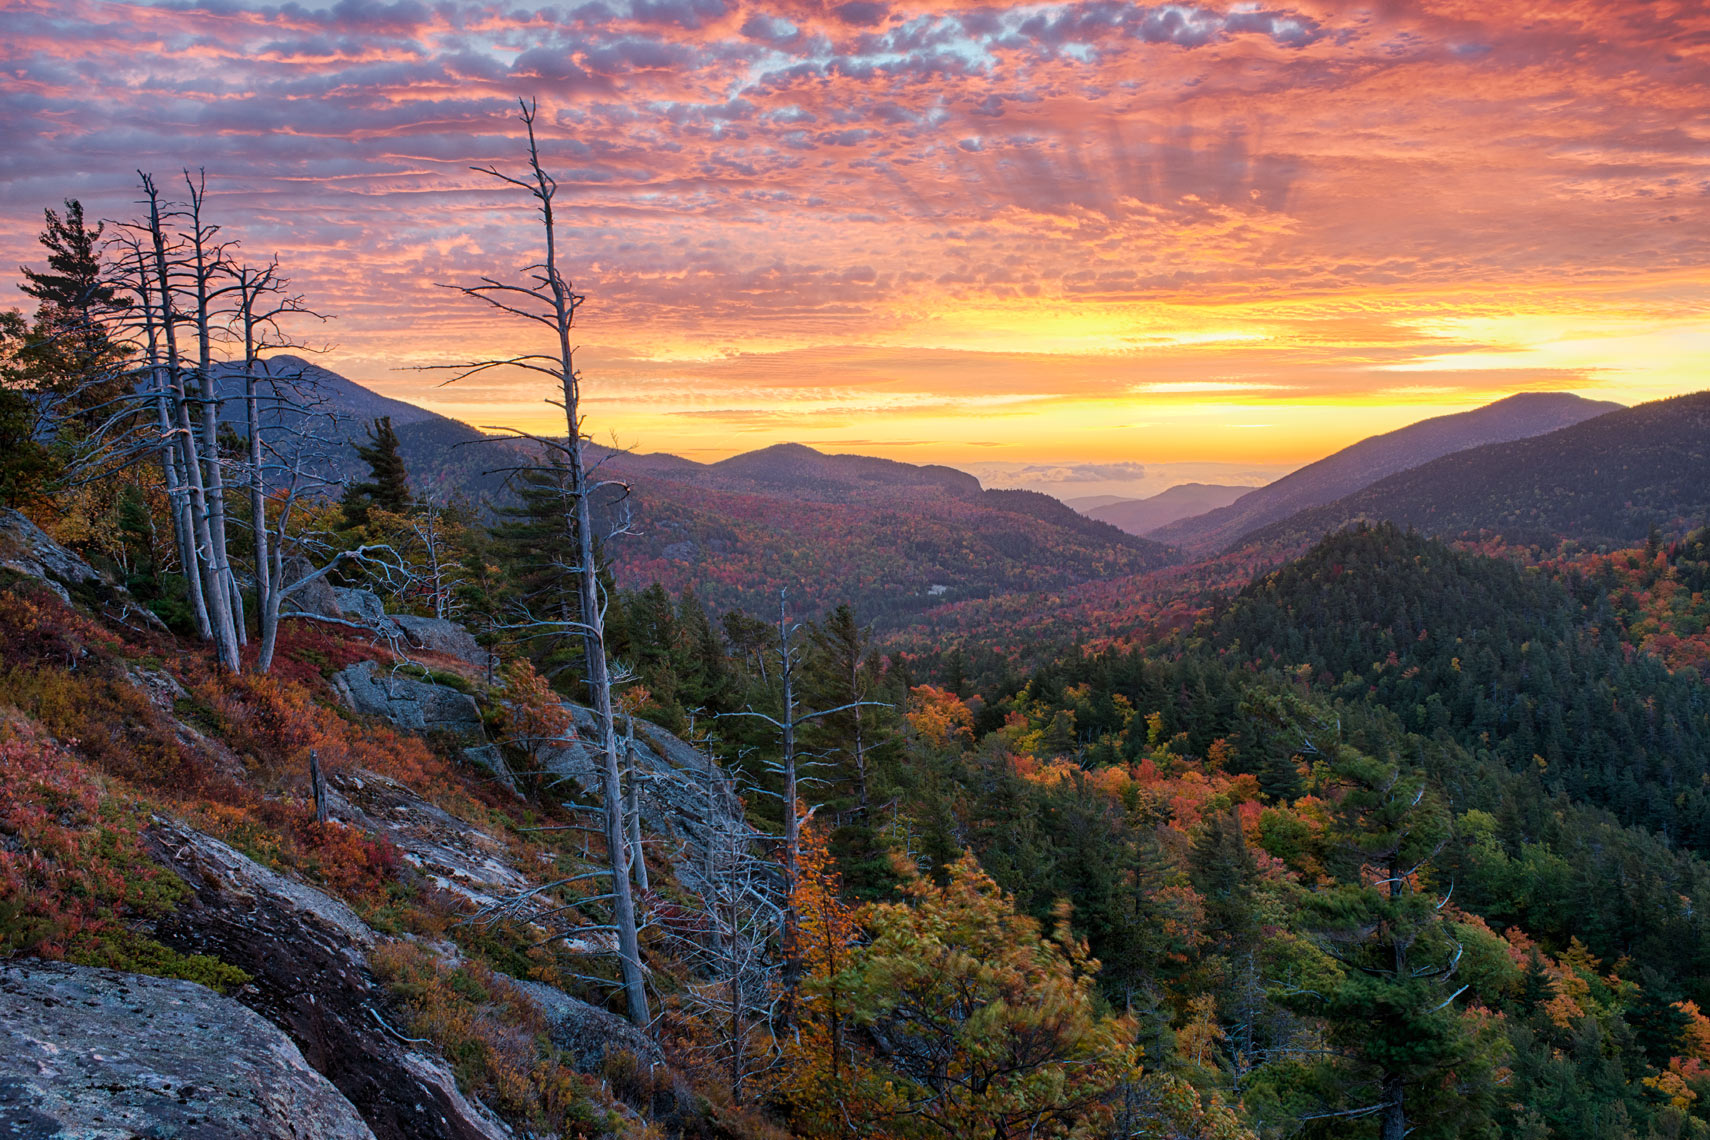 Autumn Sunrise From Baxter Mountain, Adirondack Mountains, New York State